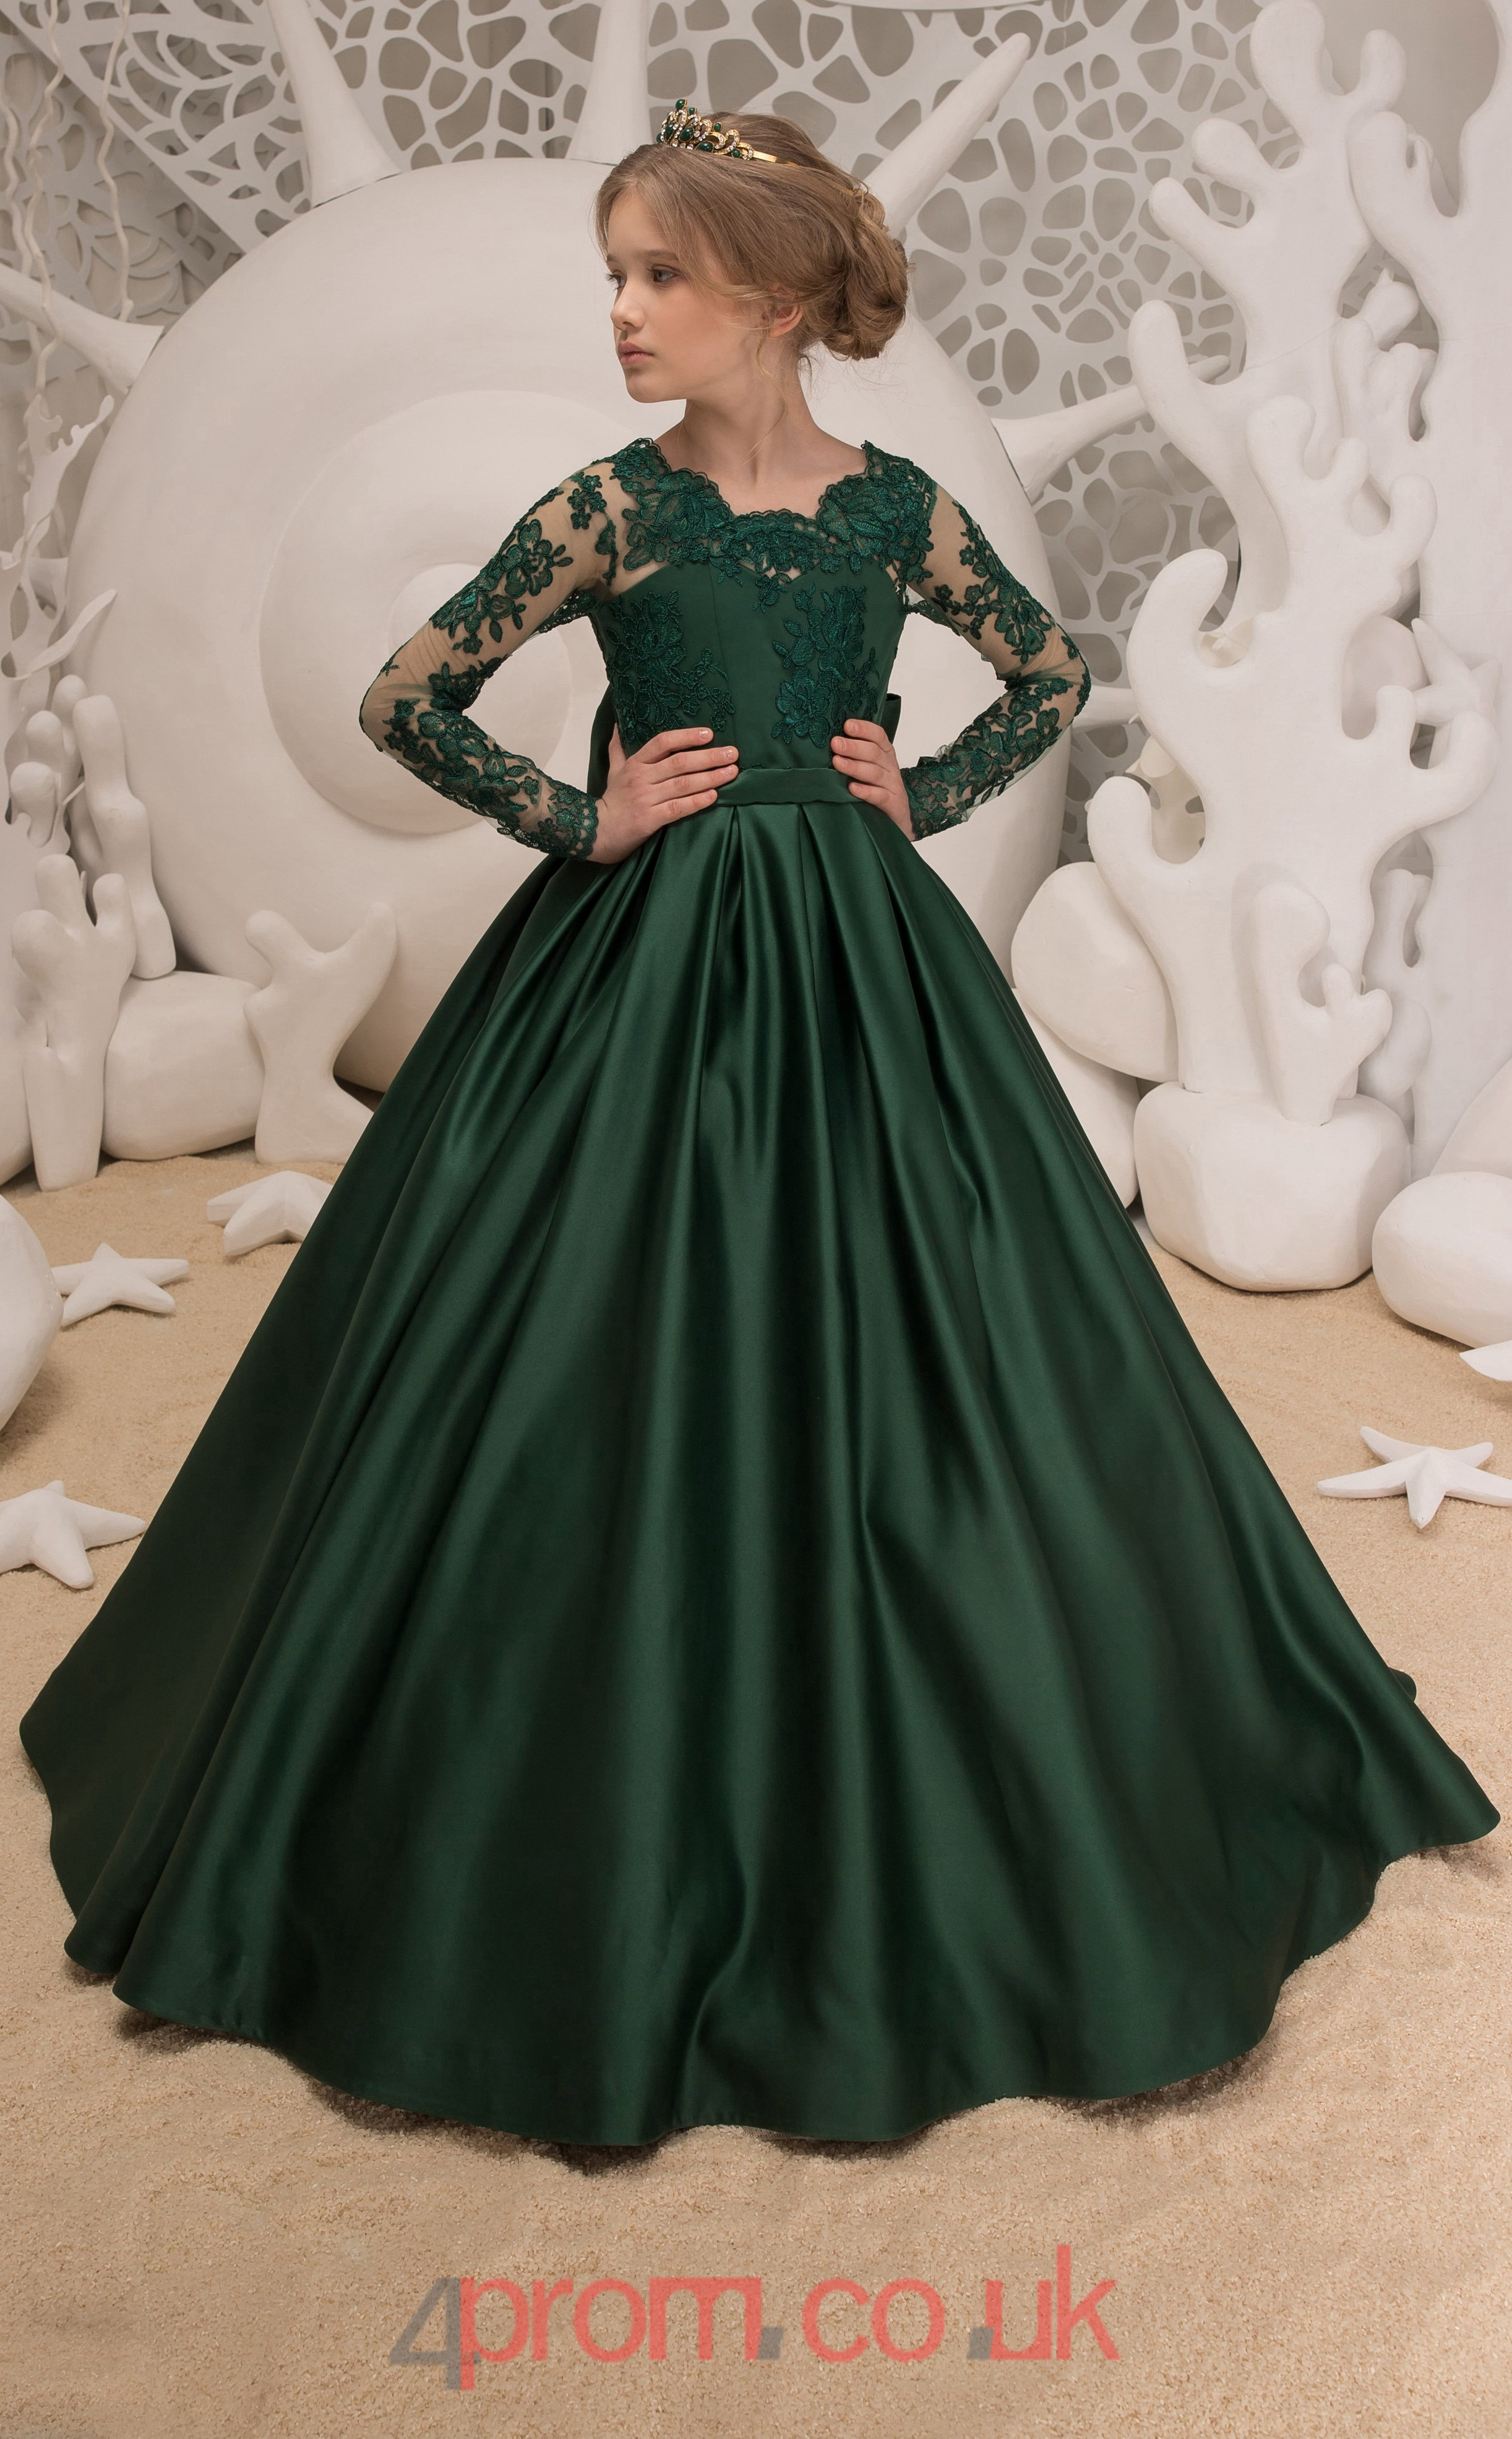 74c95cc7875 Jewel Long Sleeve Dark Green Kids Prom Dresses CHK040 - 4prom.co.uk